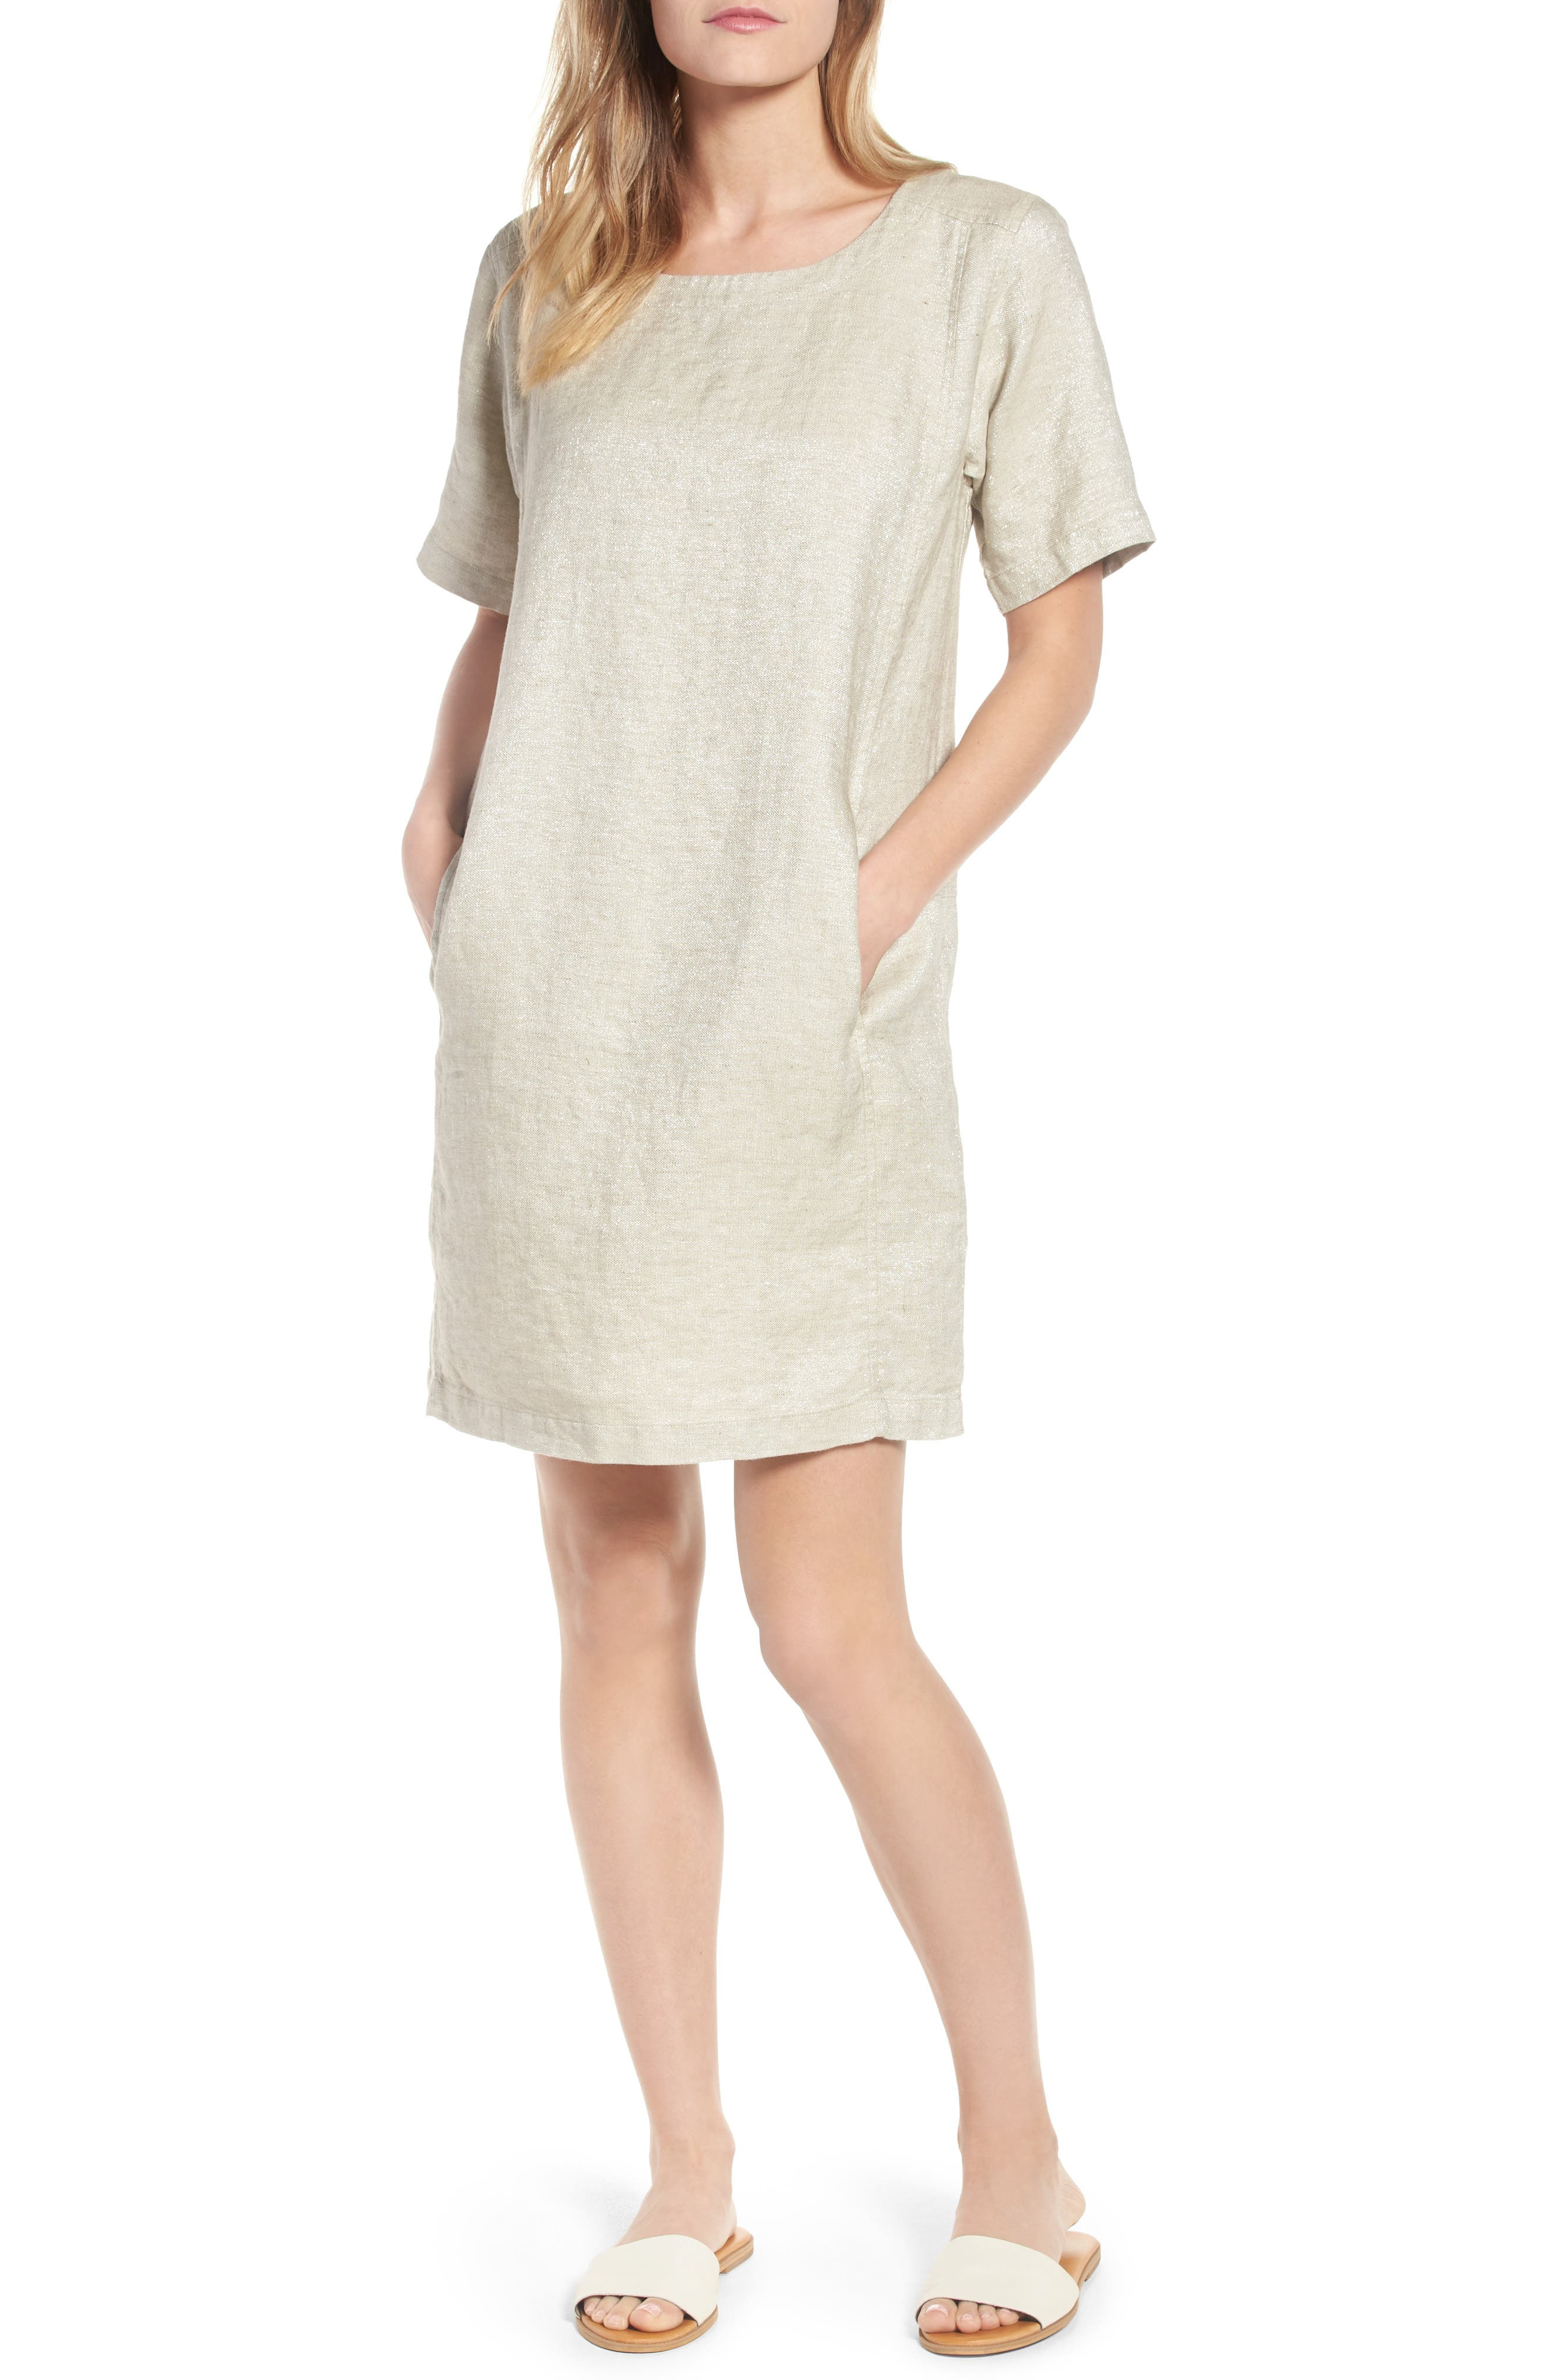 Eileen Fisher Scoop Neck Linen Blend Dress (Regular & Petite)